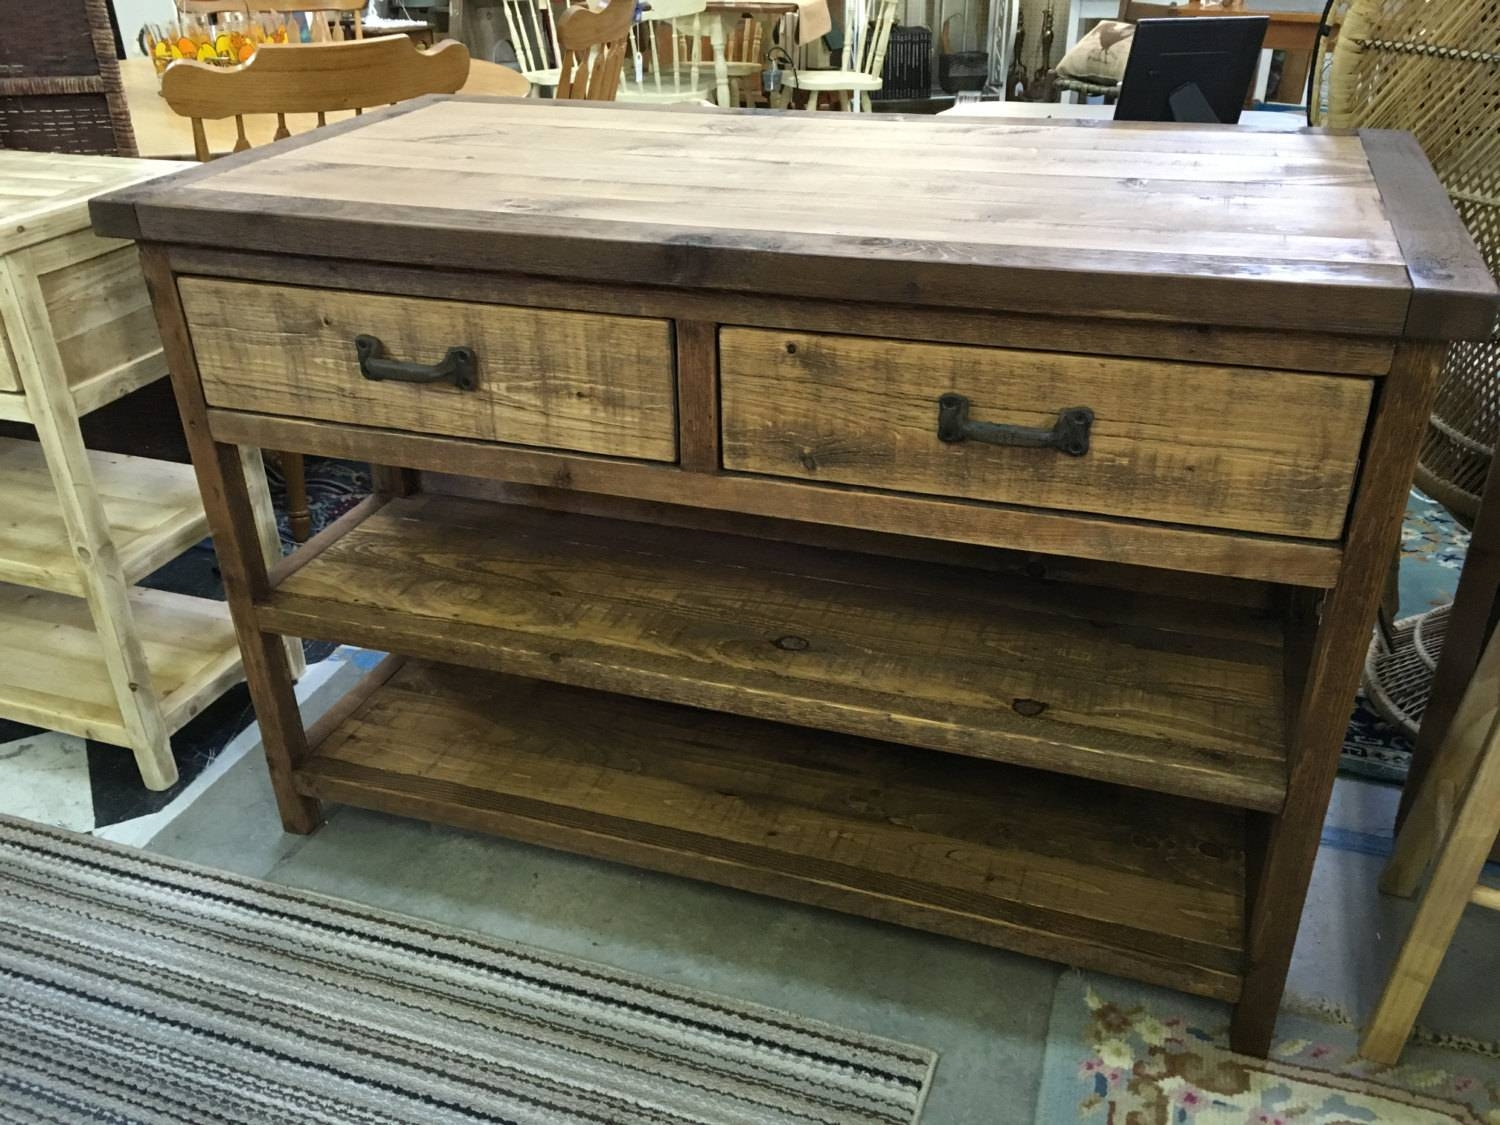 Vintage Outdoor Sideboard — The Homy Design : Pine Outdoor With Regard To Outdoor Sideboard Tables (View 11 of 15)